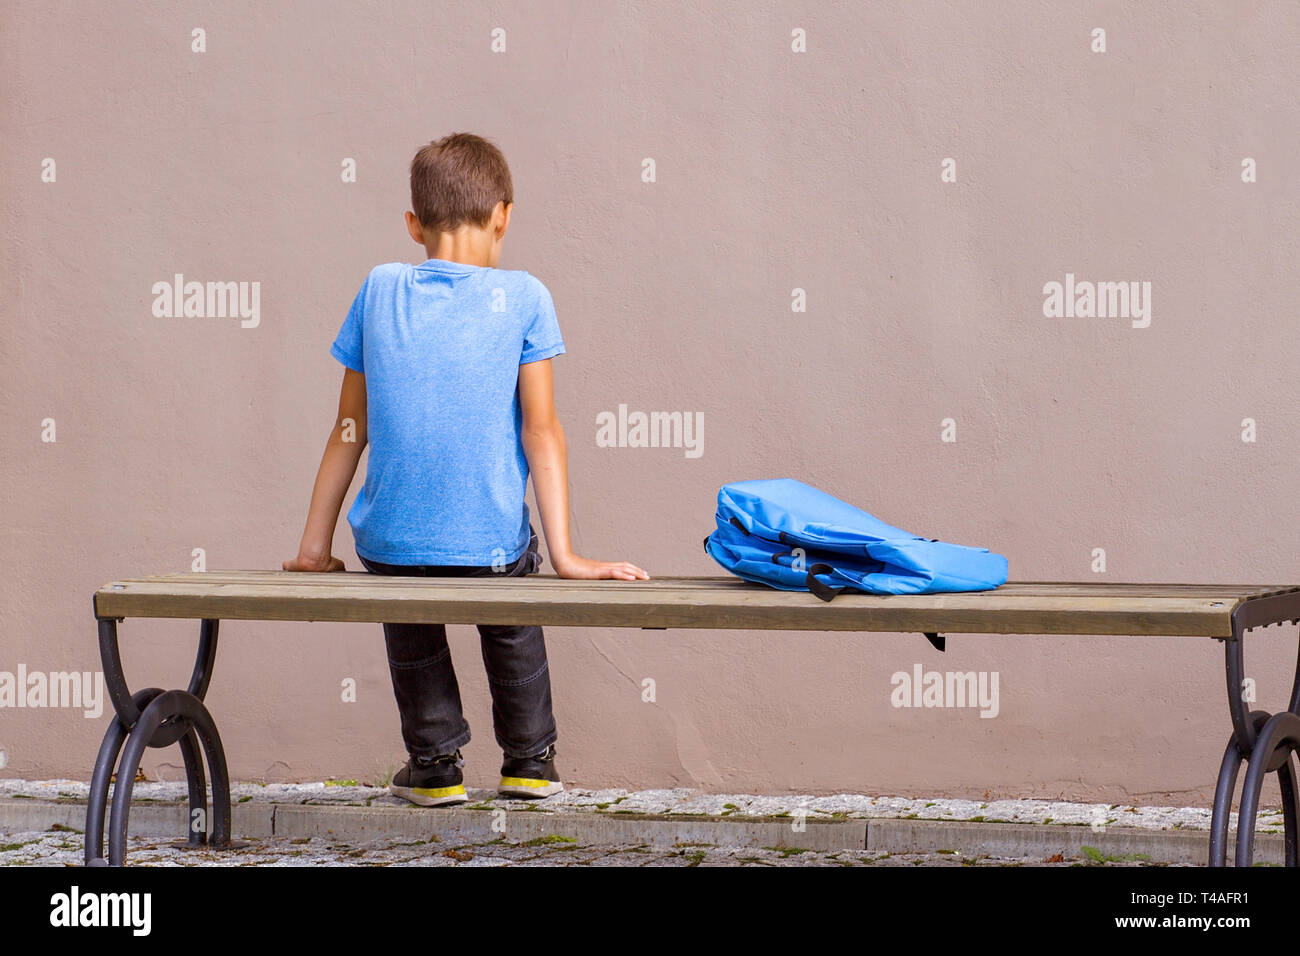 Sad alone child sitting on the bench outdoors. - Stock Image